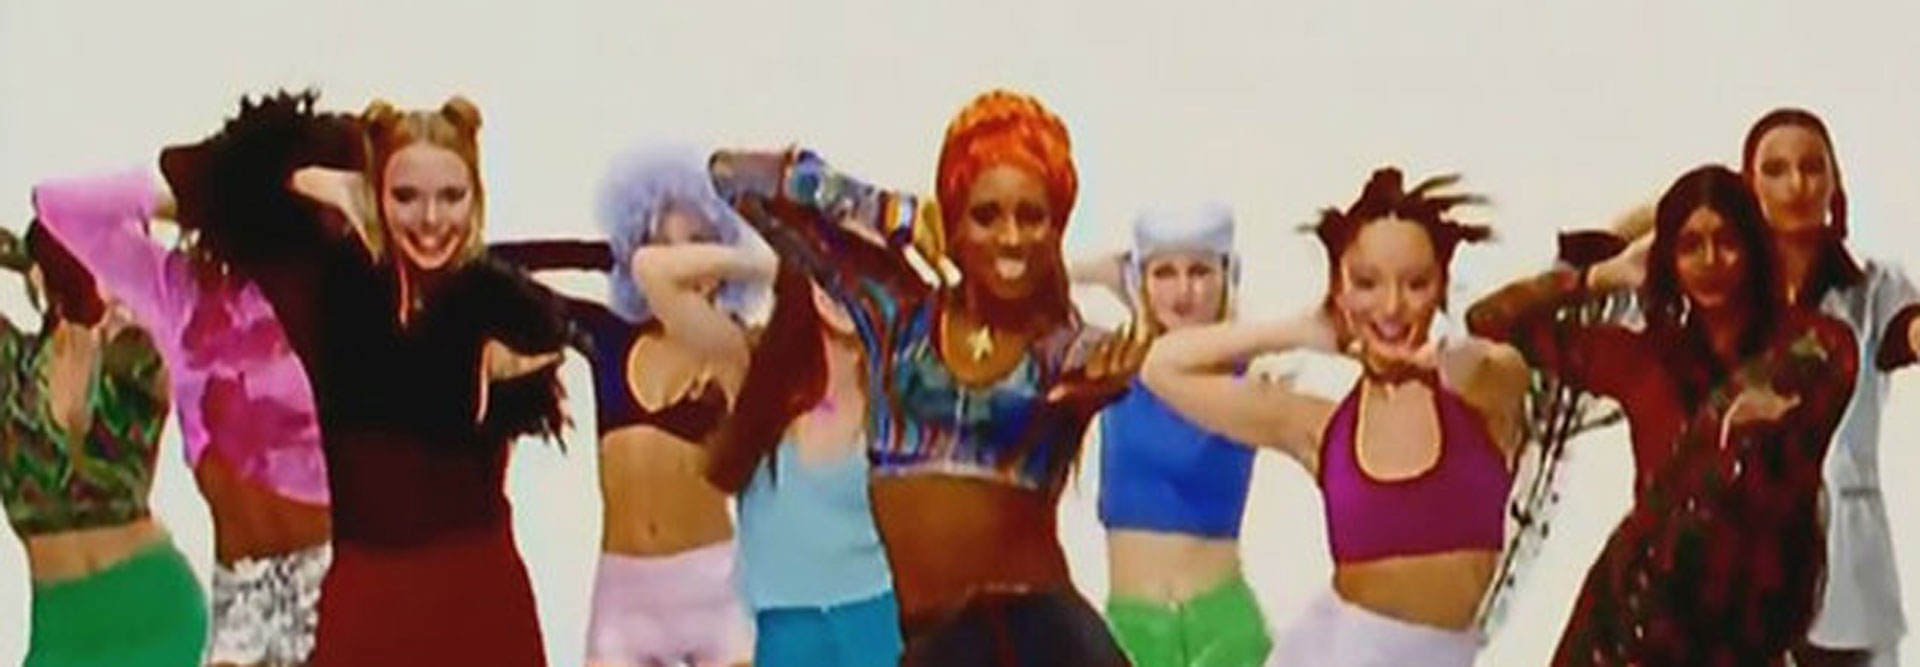 Video still from a 1996 music video of Macarena, directed by Vincent Calet, featuring Los Del Río and Tracee Ellis Ross